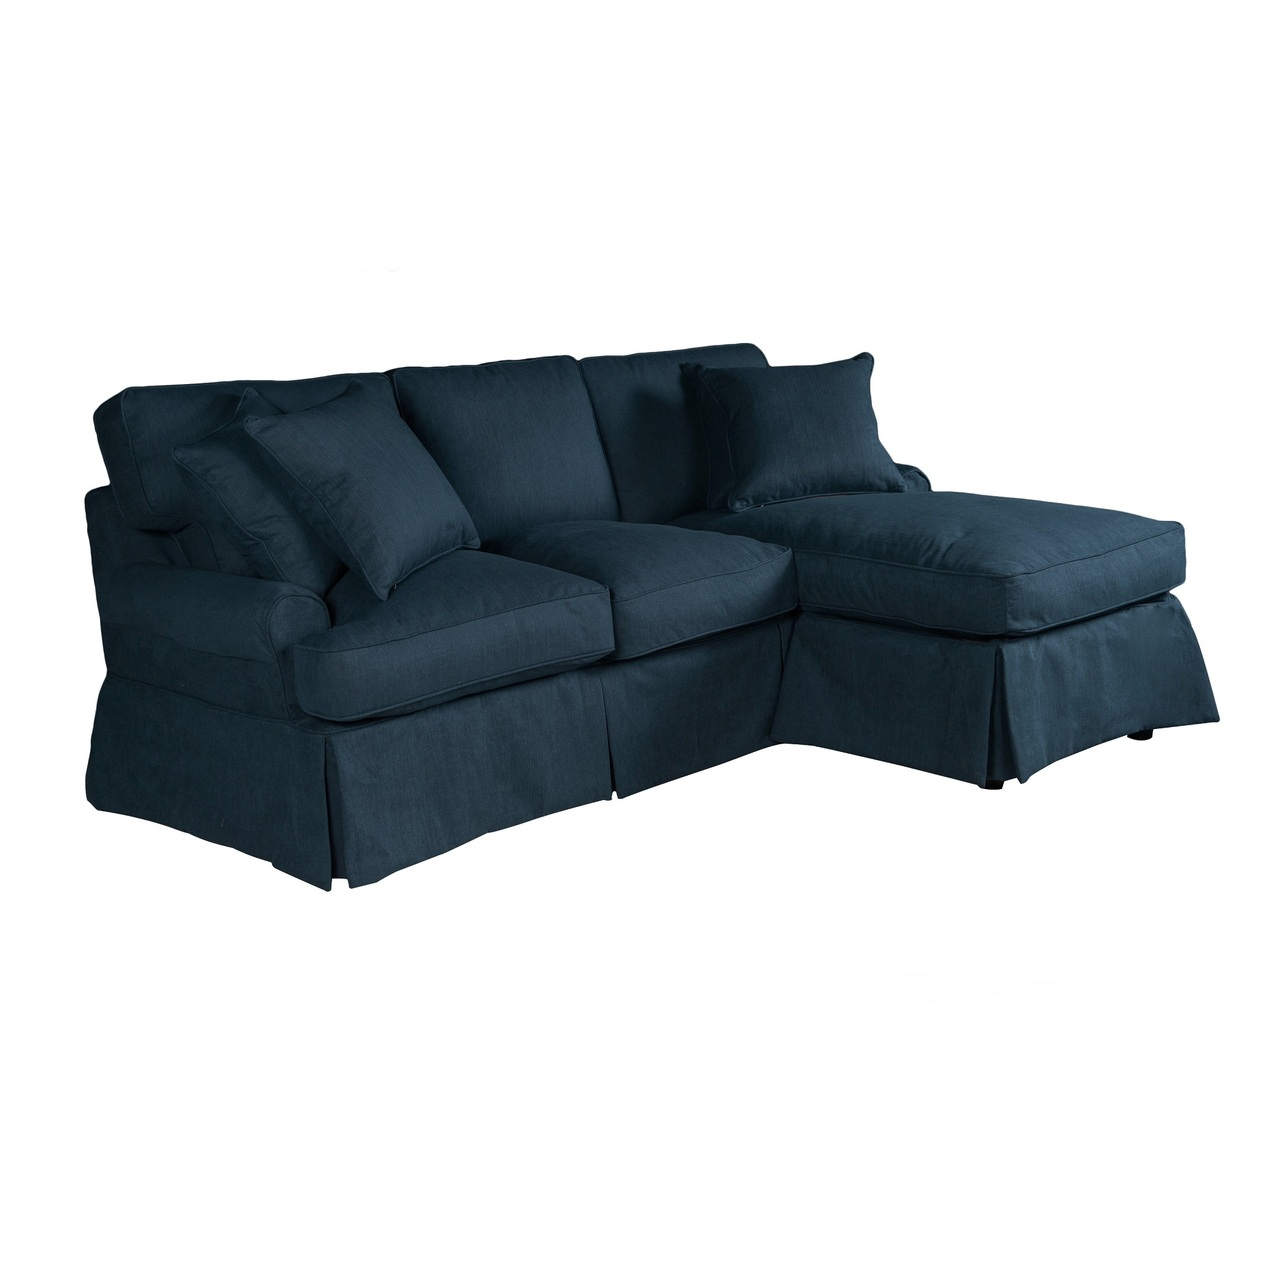 85 performance fabric navy blue slipcover for t cushion sectional sofa with chaise